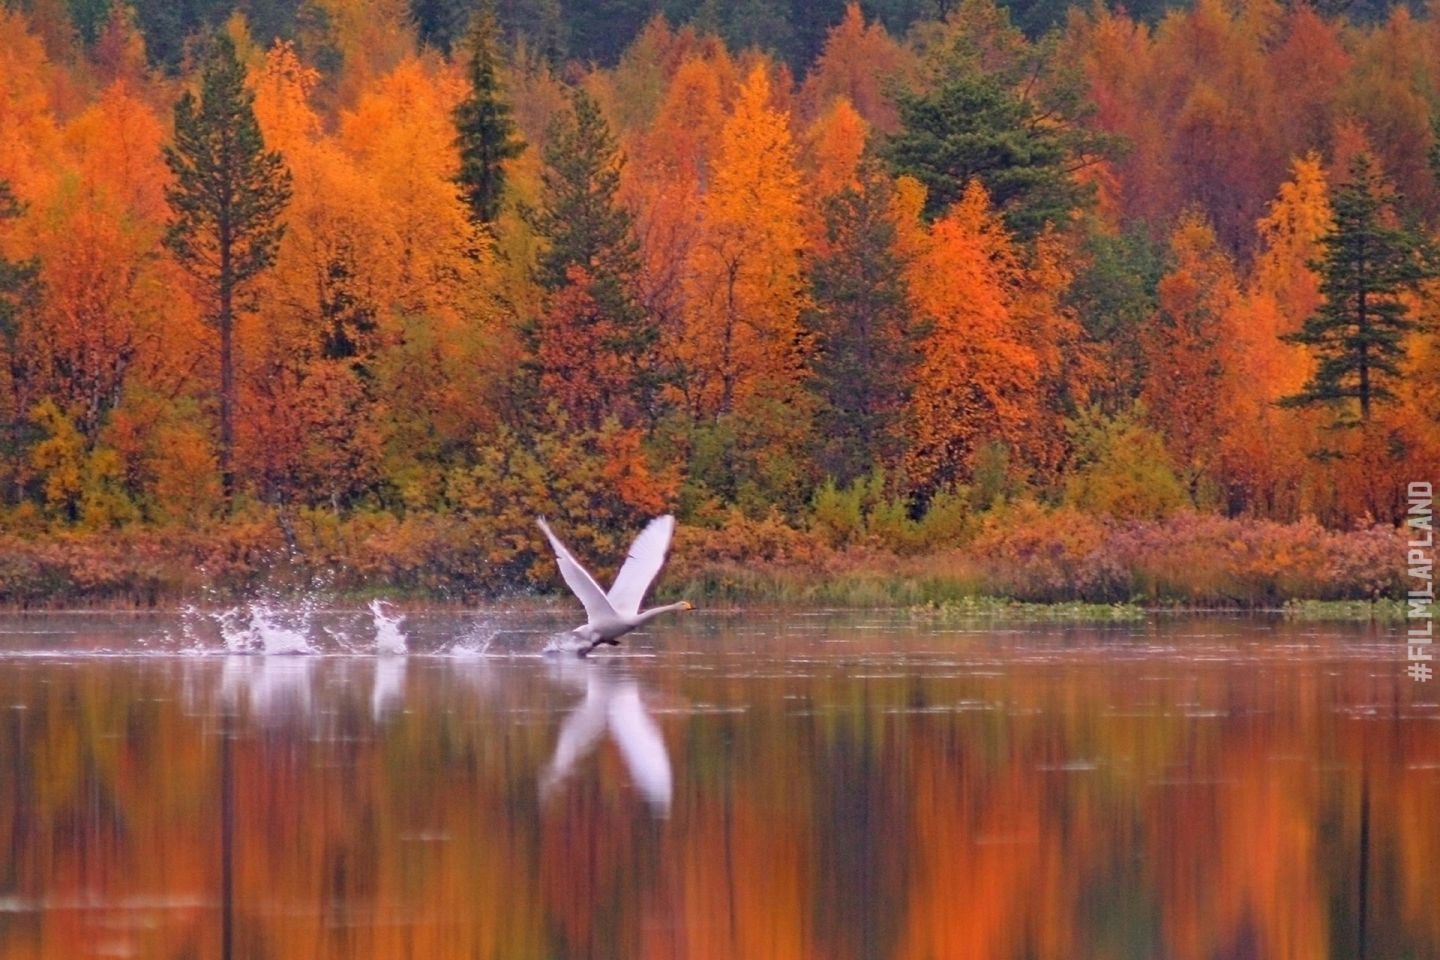 Swans flying over a lake in Kittilä, Finland in autumn